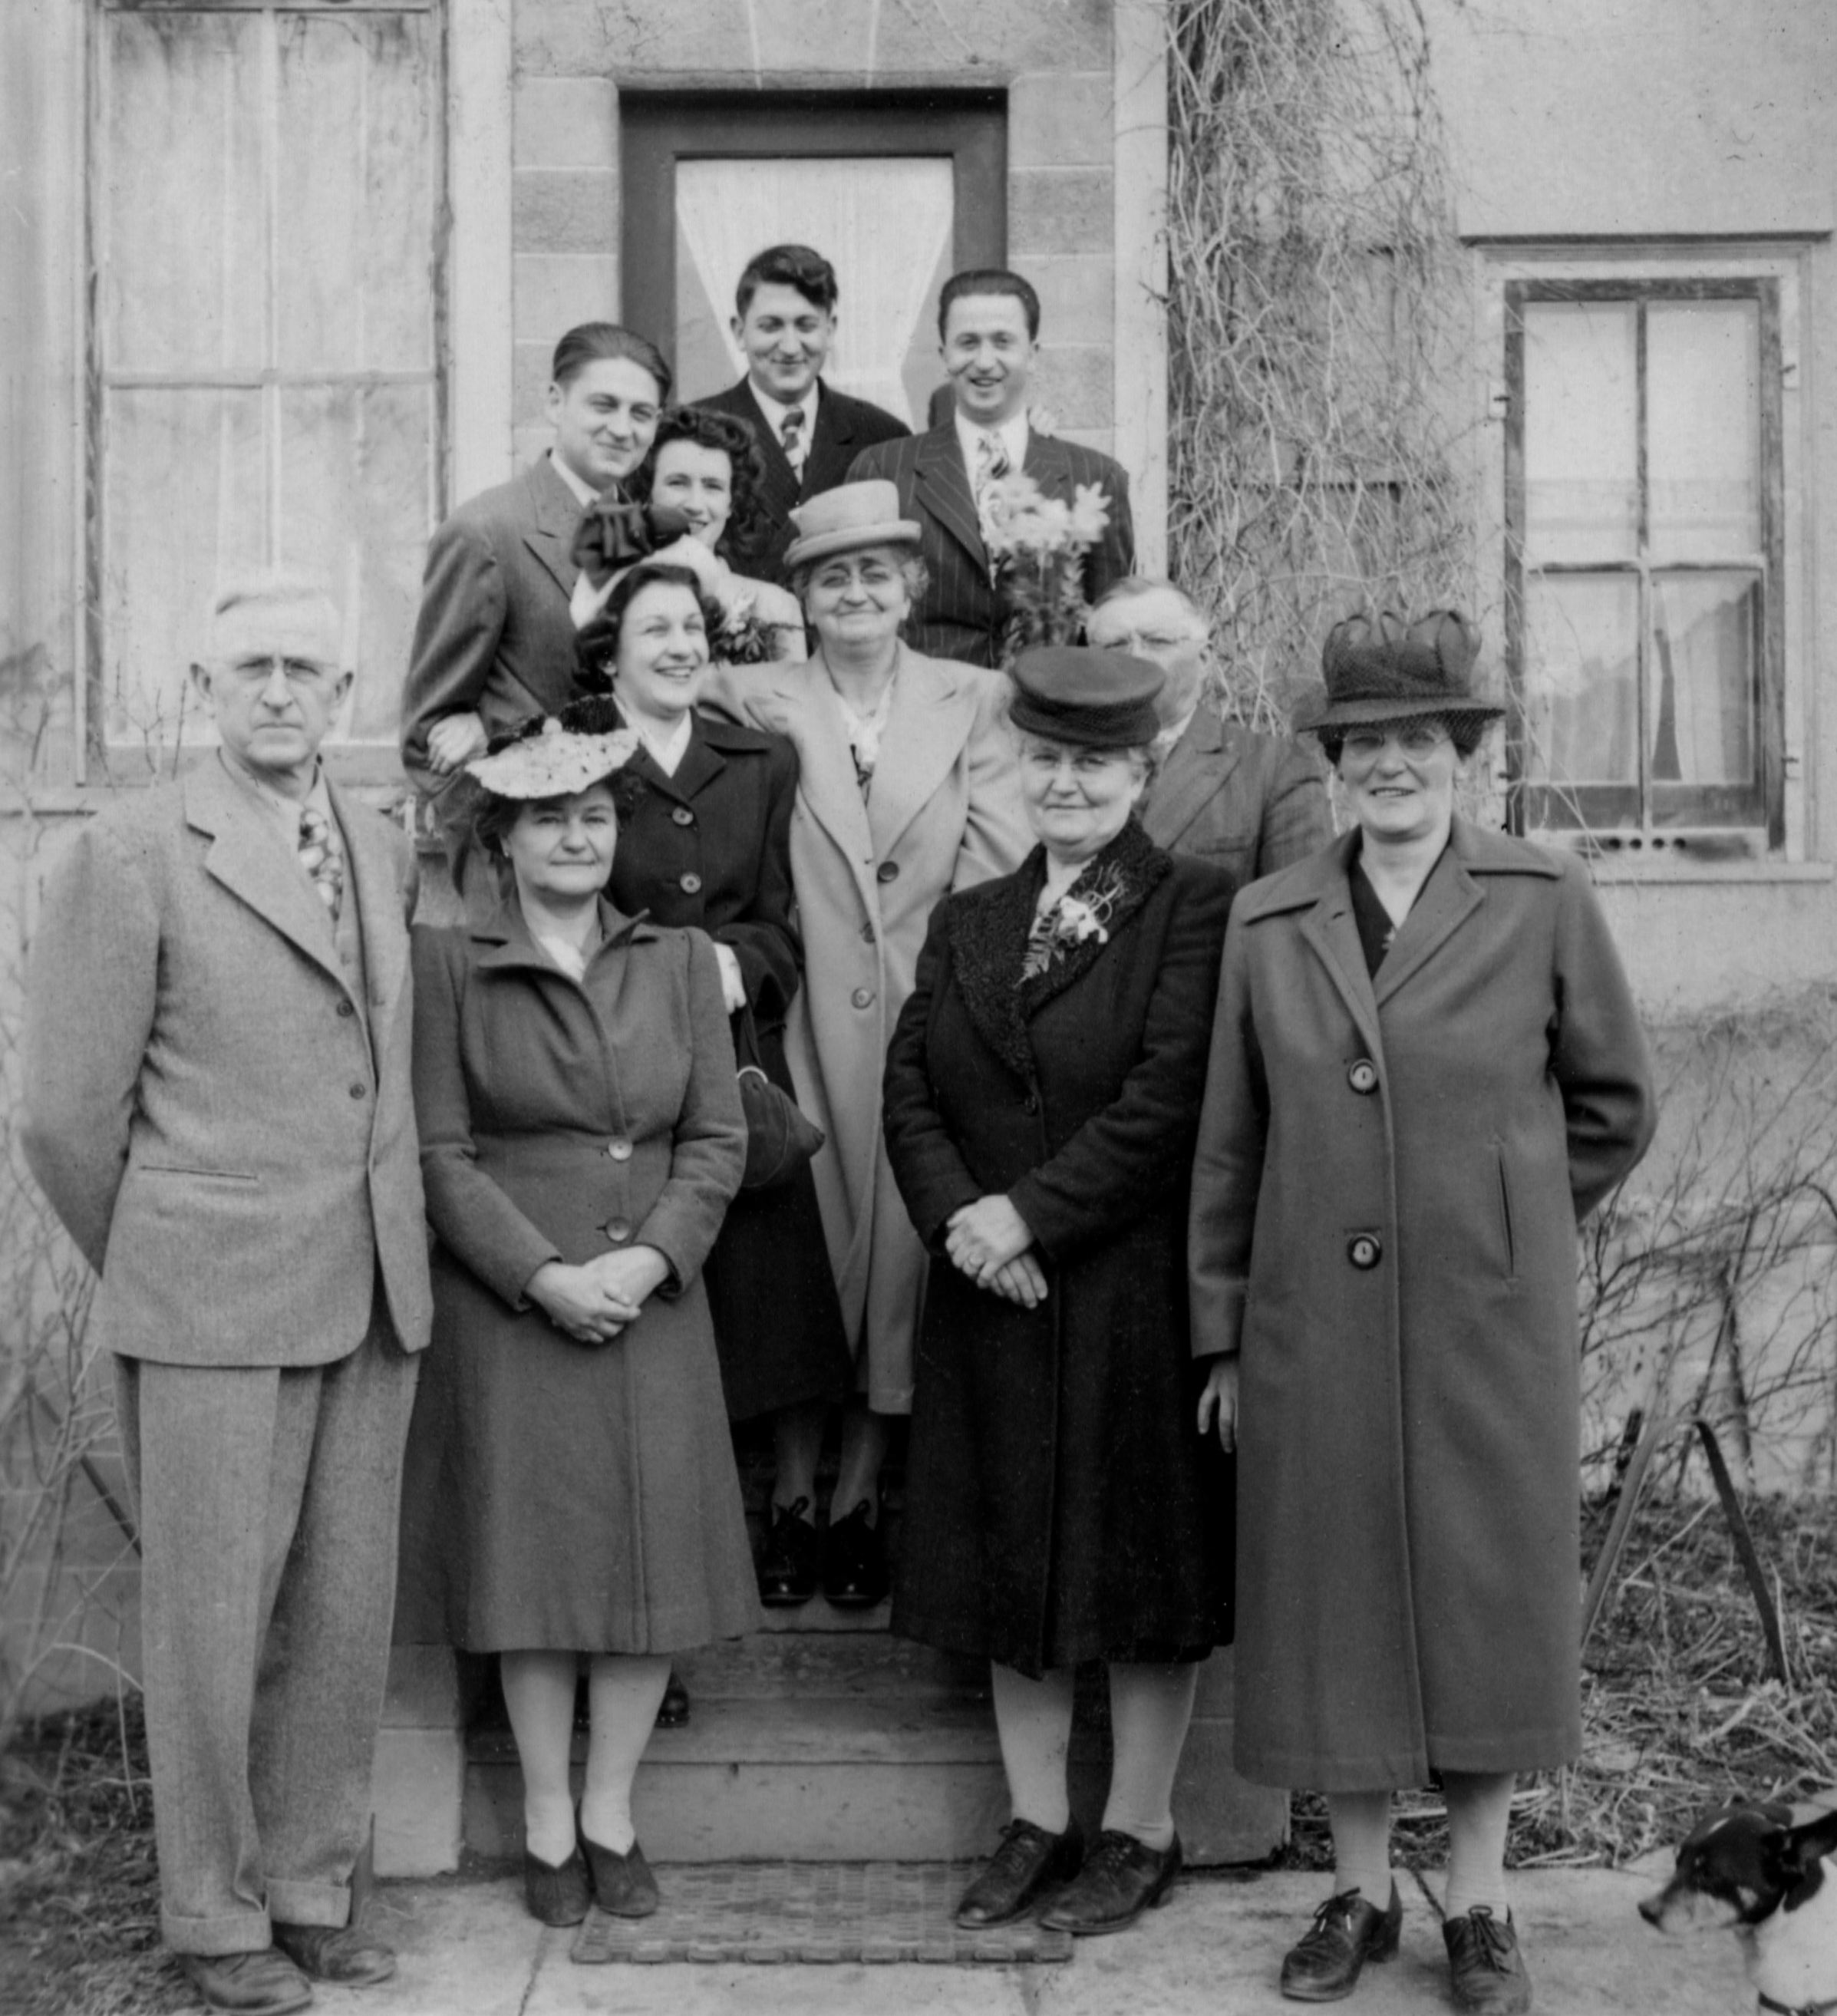 My wife's family probably in the 1940's